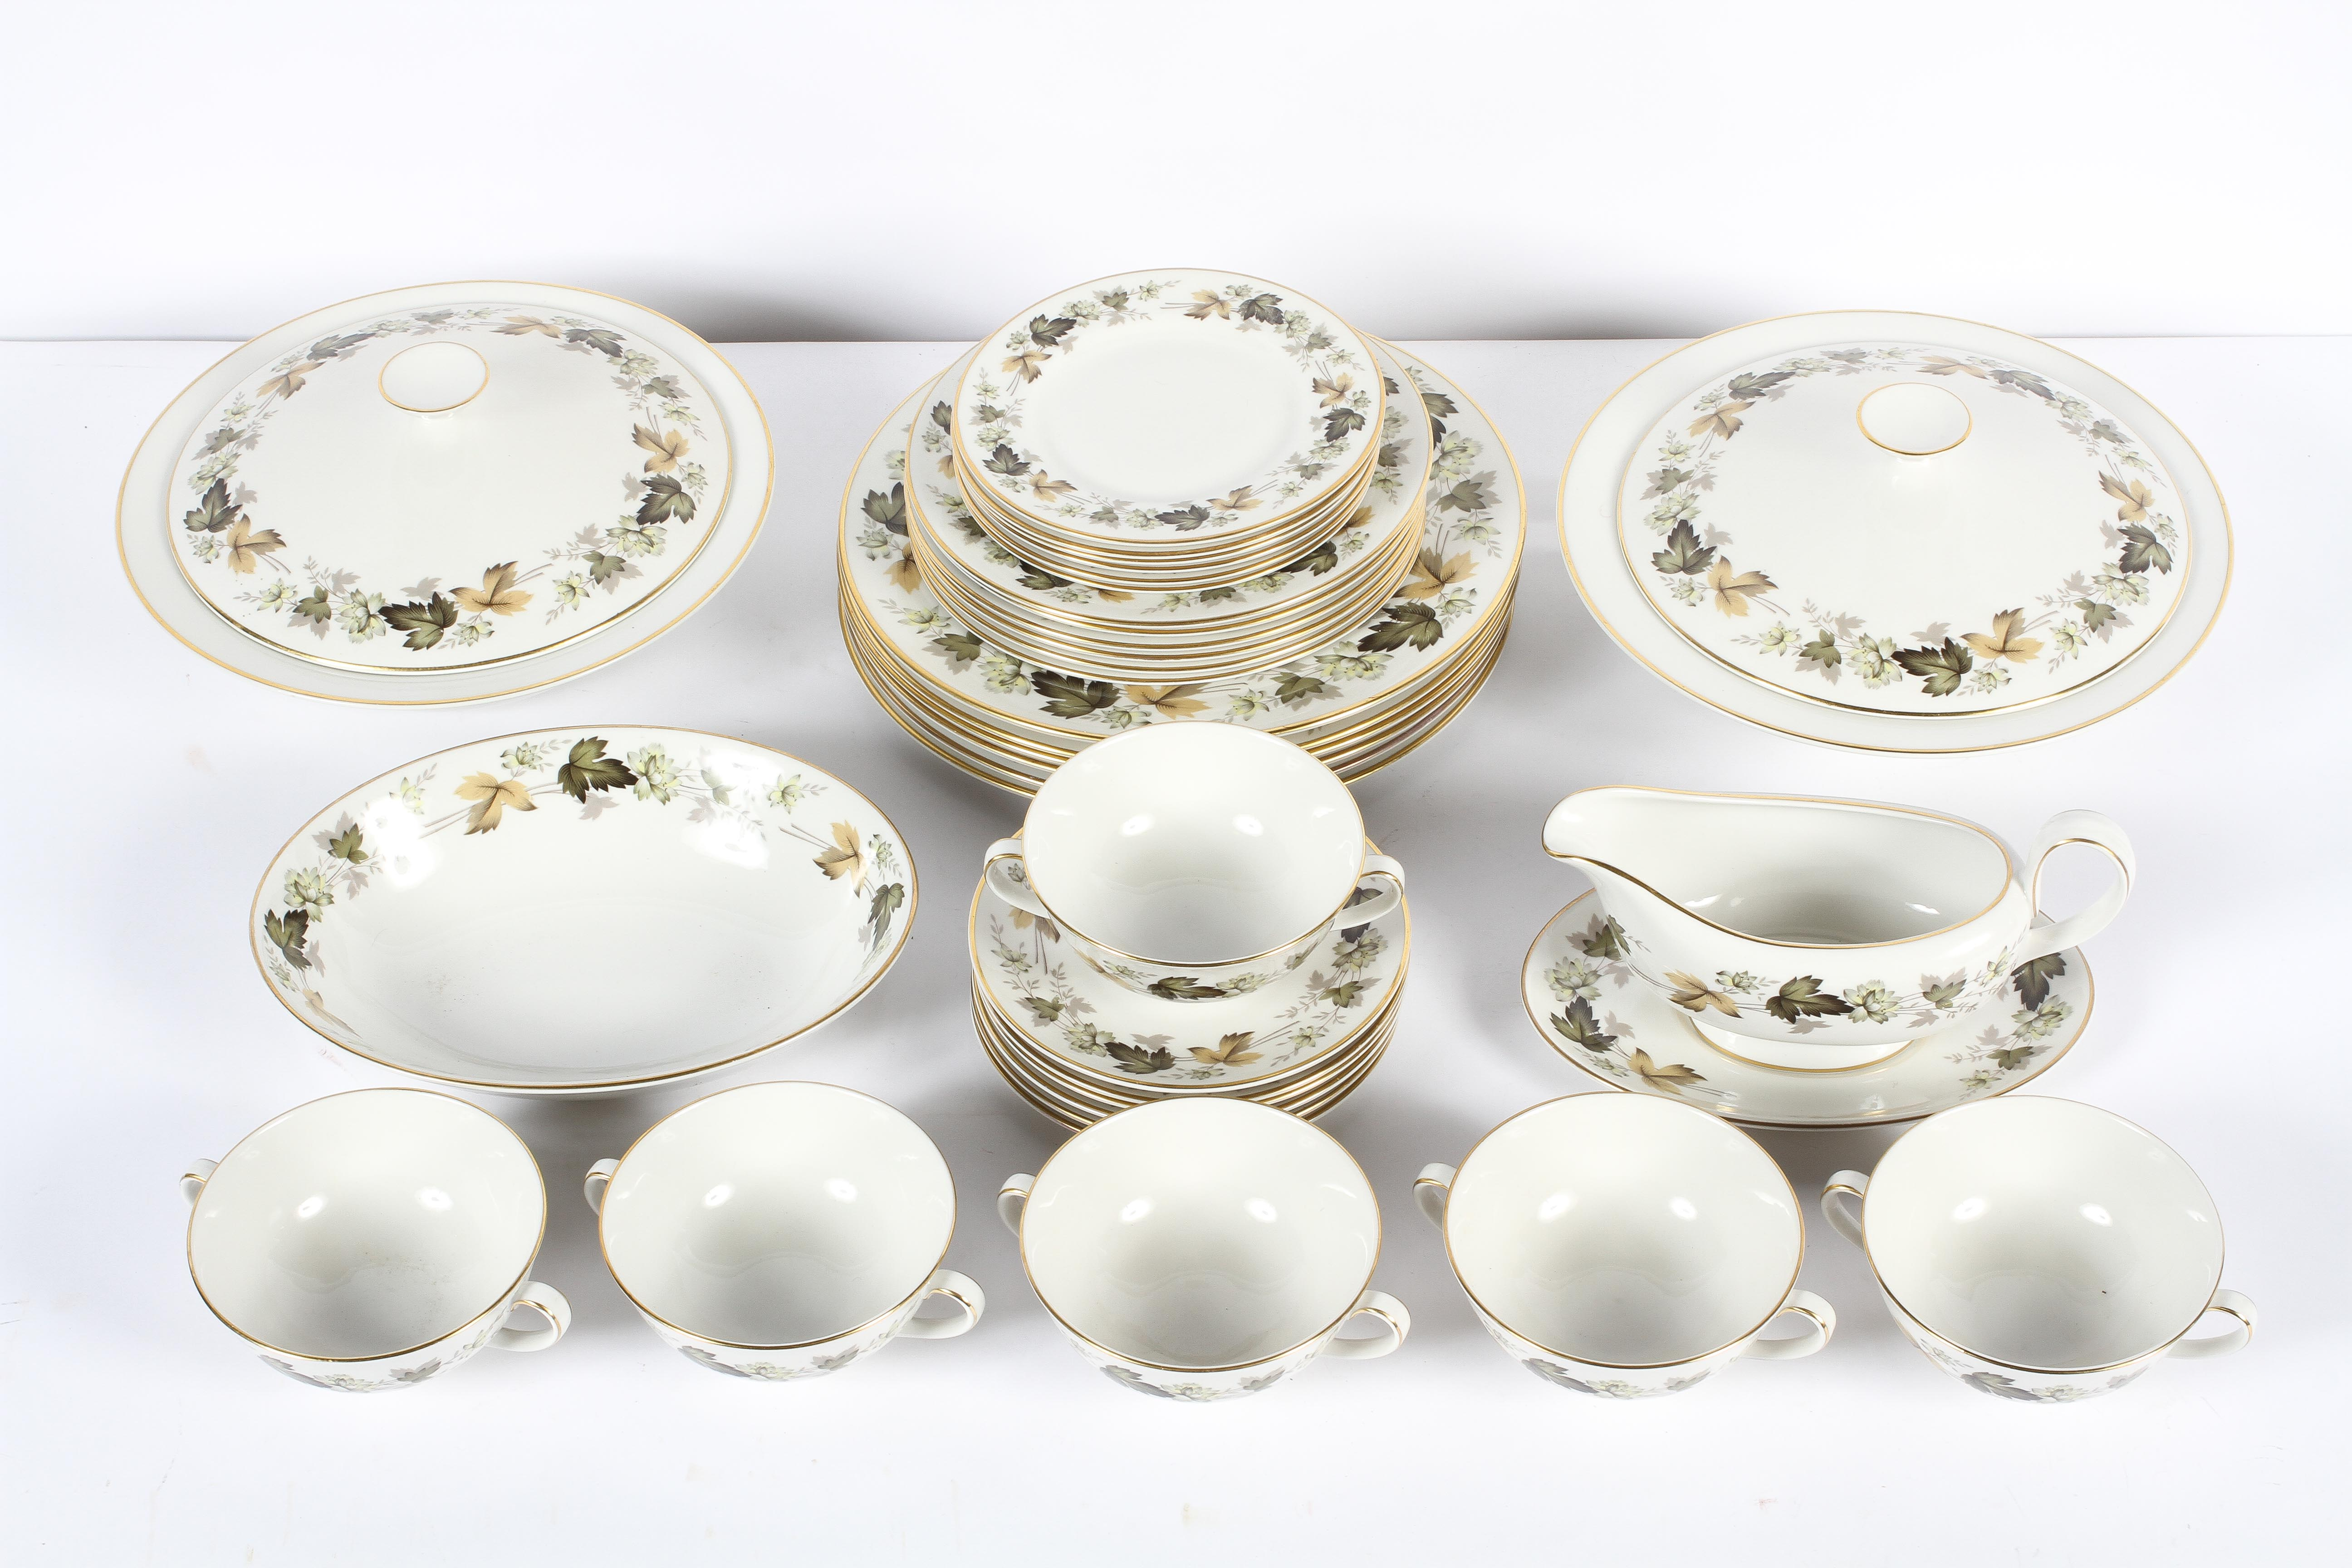 A Royal Doulton 'Larchmont' pattern part dinner service, 20th century, printed grey marks,